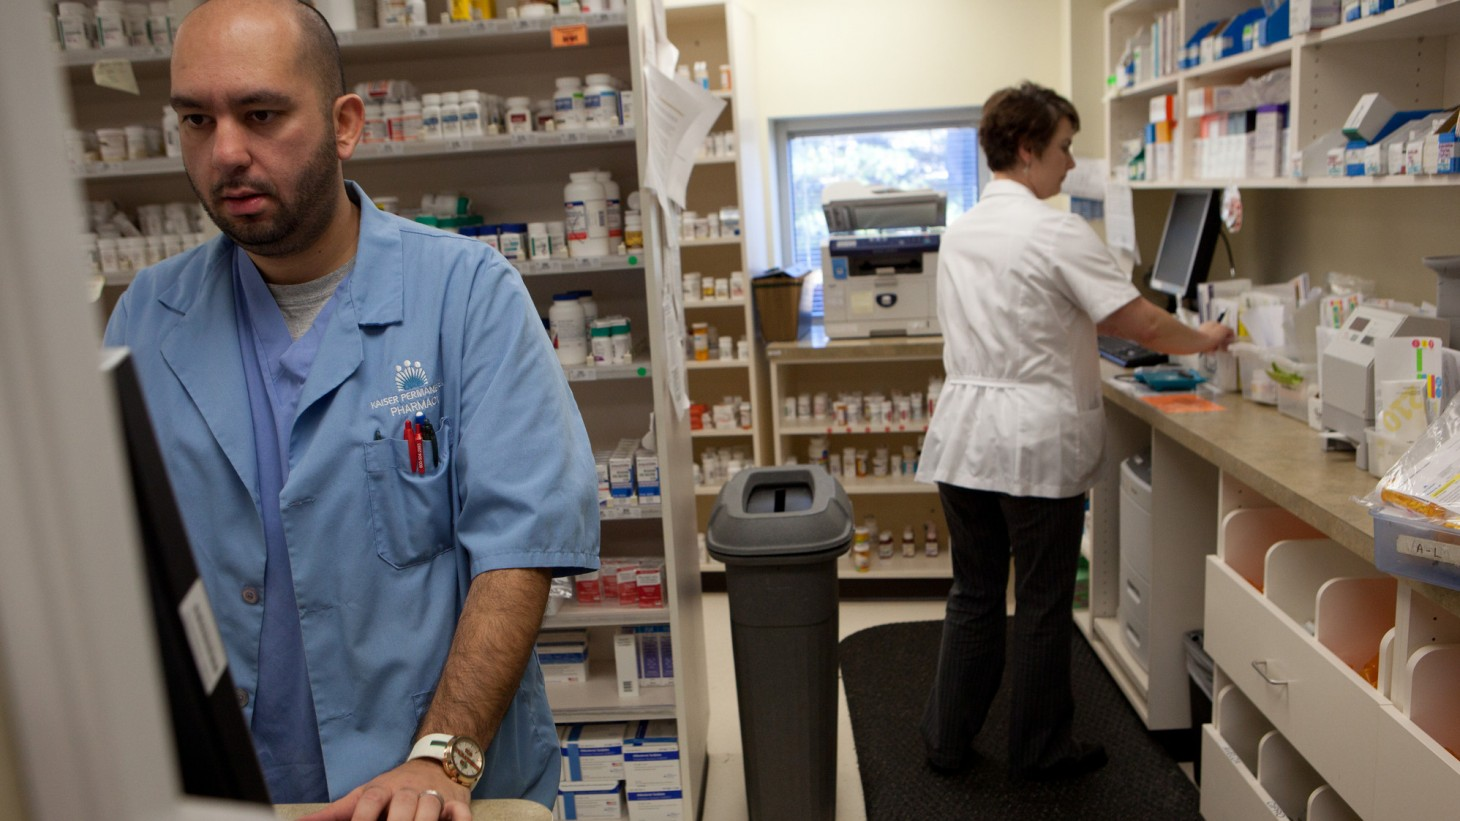 Two workers in a pharmacy